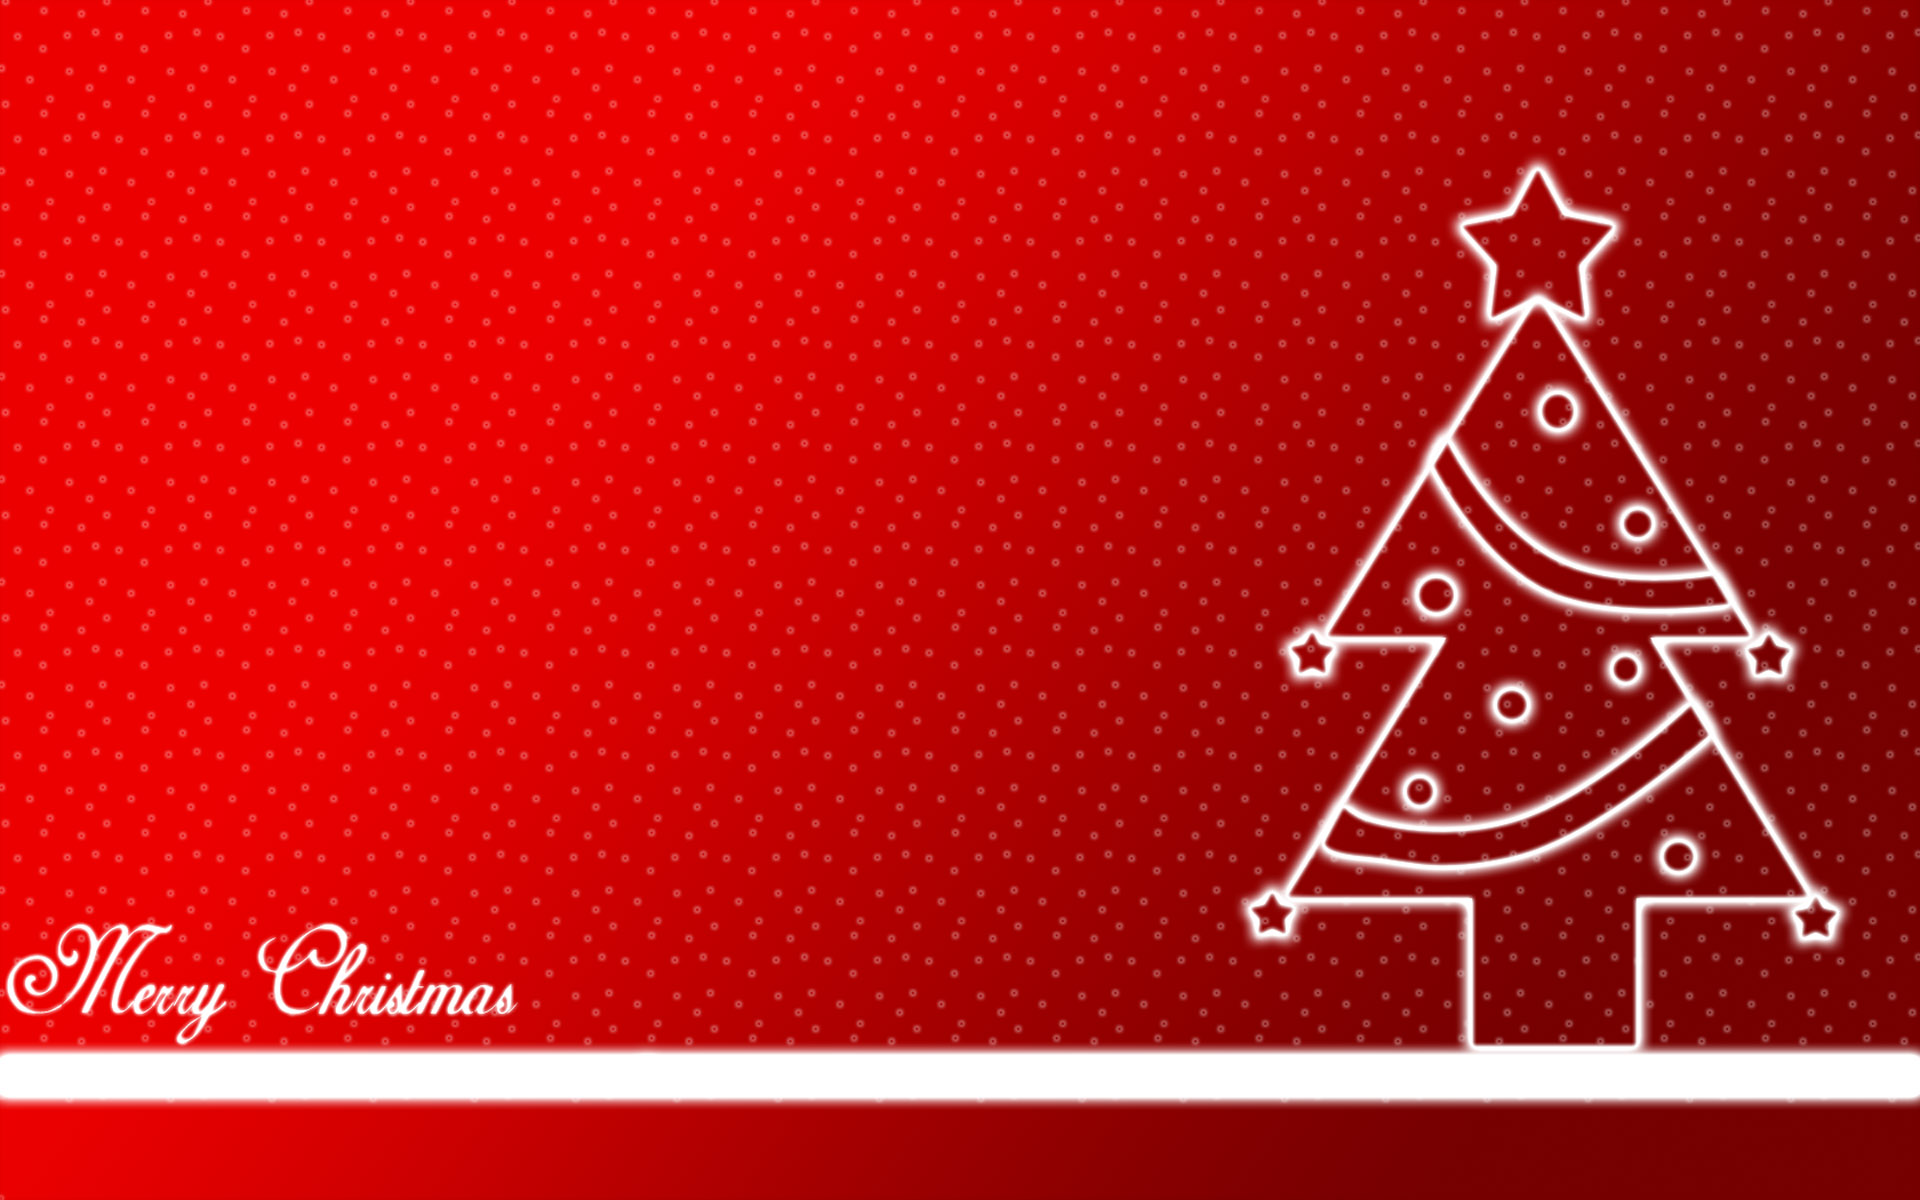 Merry Christmas Wallpapers HD Wallpapers 1920x1200